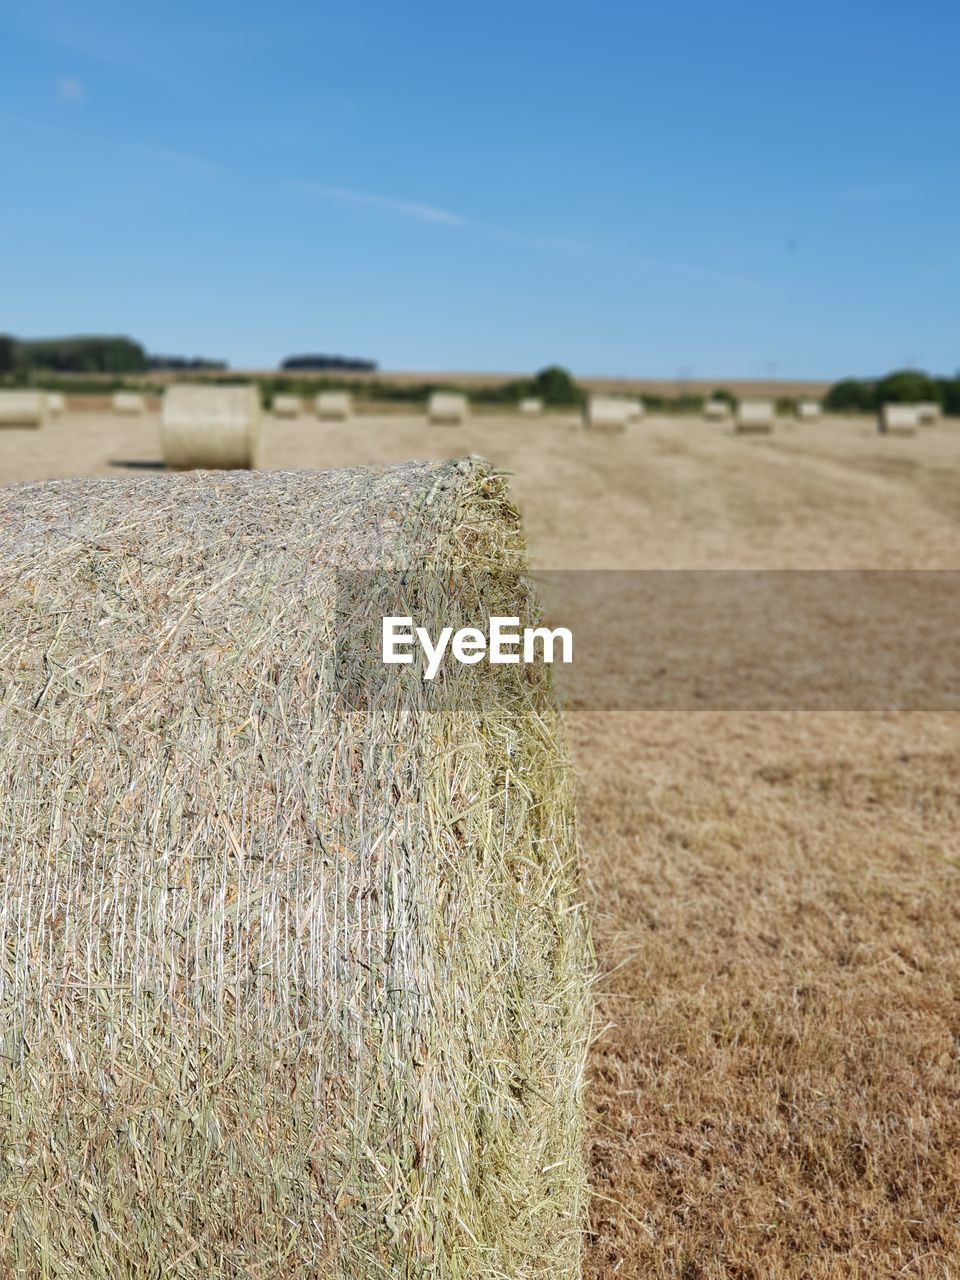 landscape, hay, agriculture, land, rural scene, field, sky, farm, plant, environment, nature, bale, day, focus on foreground, tranquility, harvesting, tranquil scene, no people, outdoors, scenics - nature